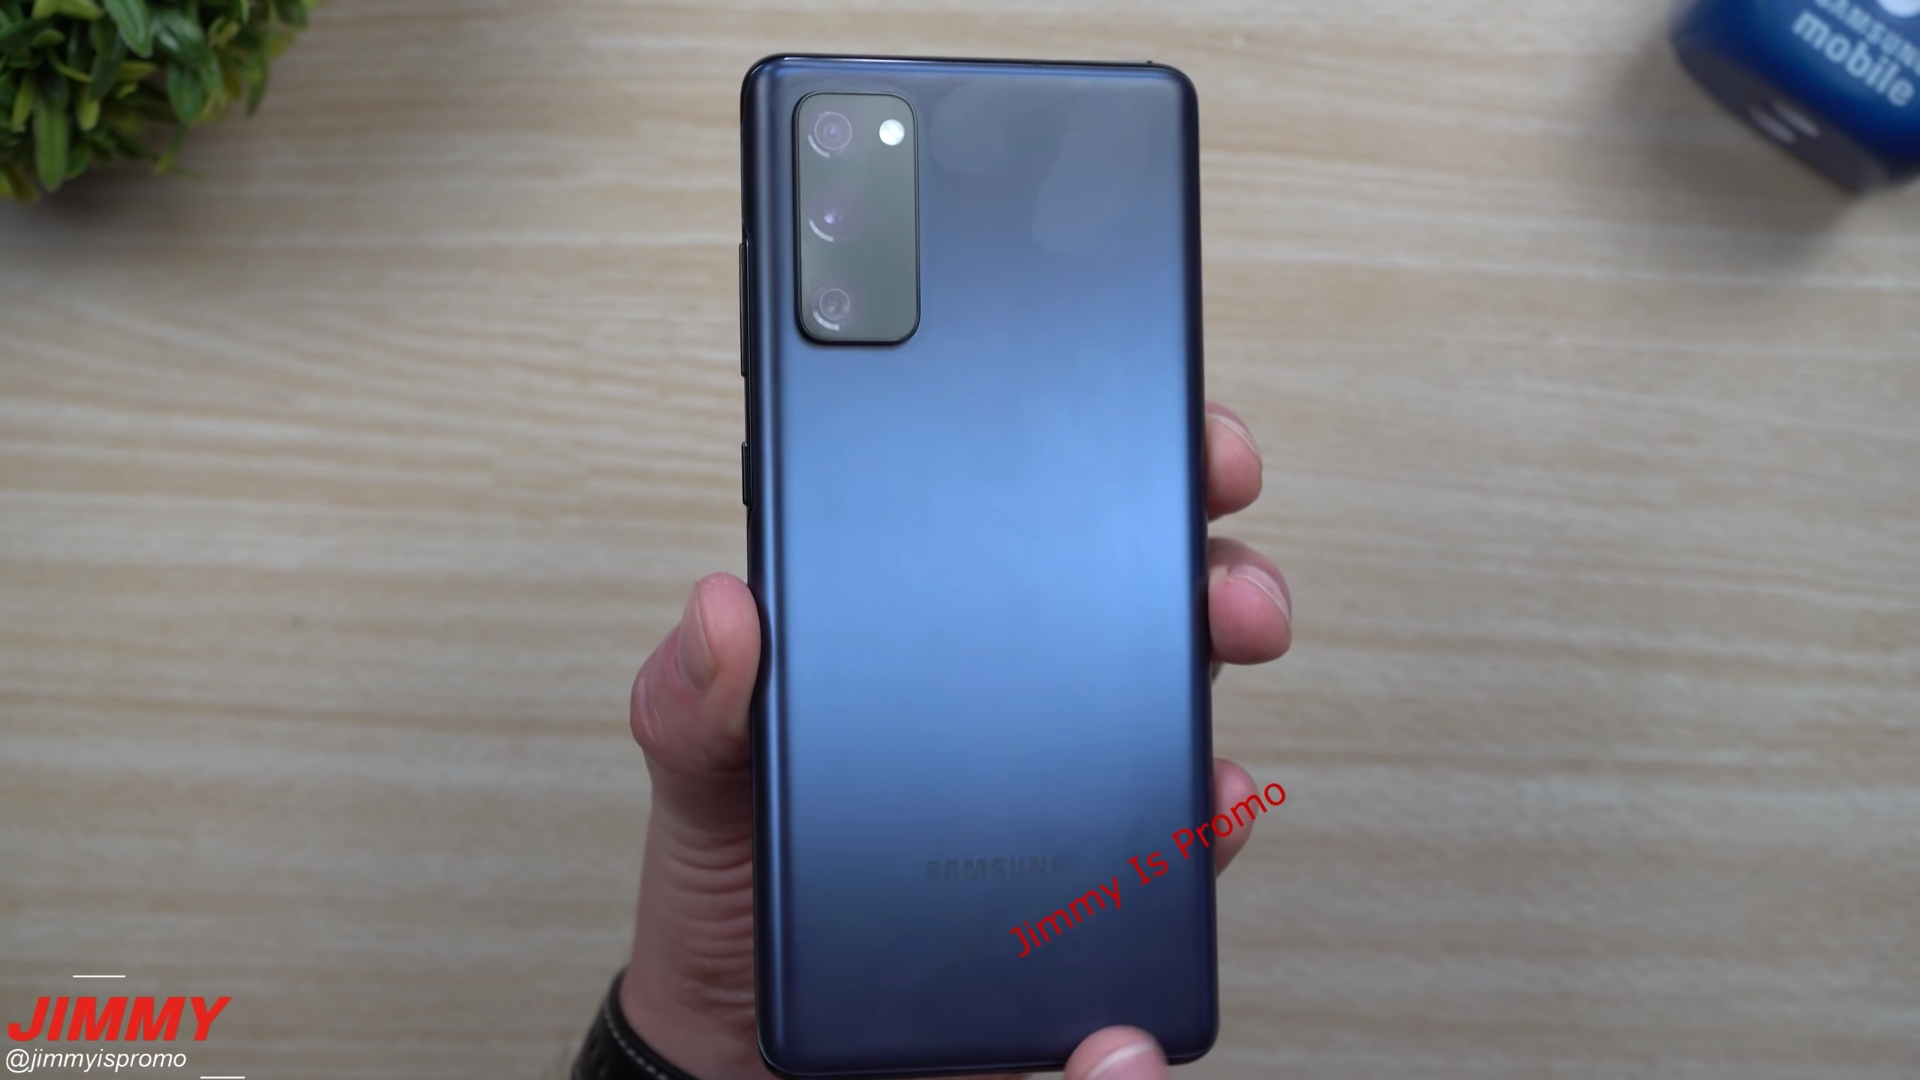 Samsung Galaxy S20 FE Leaked Hands On